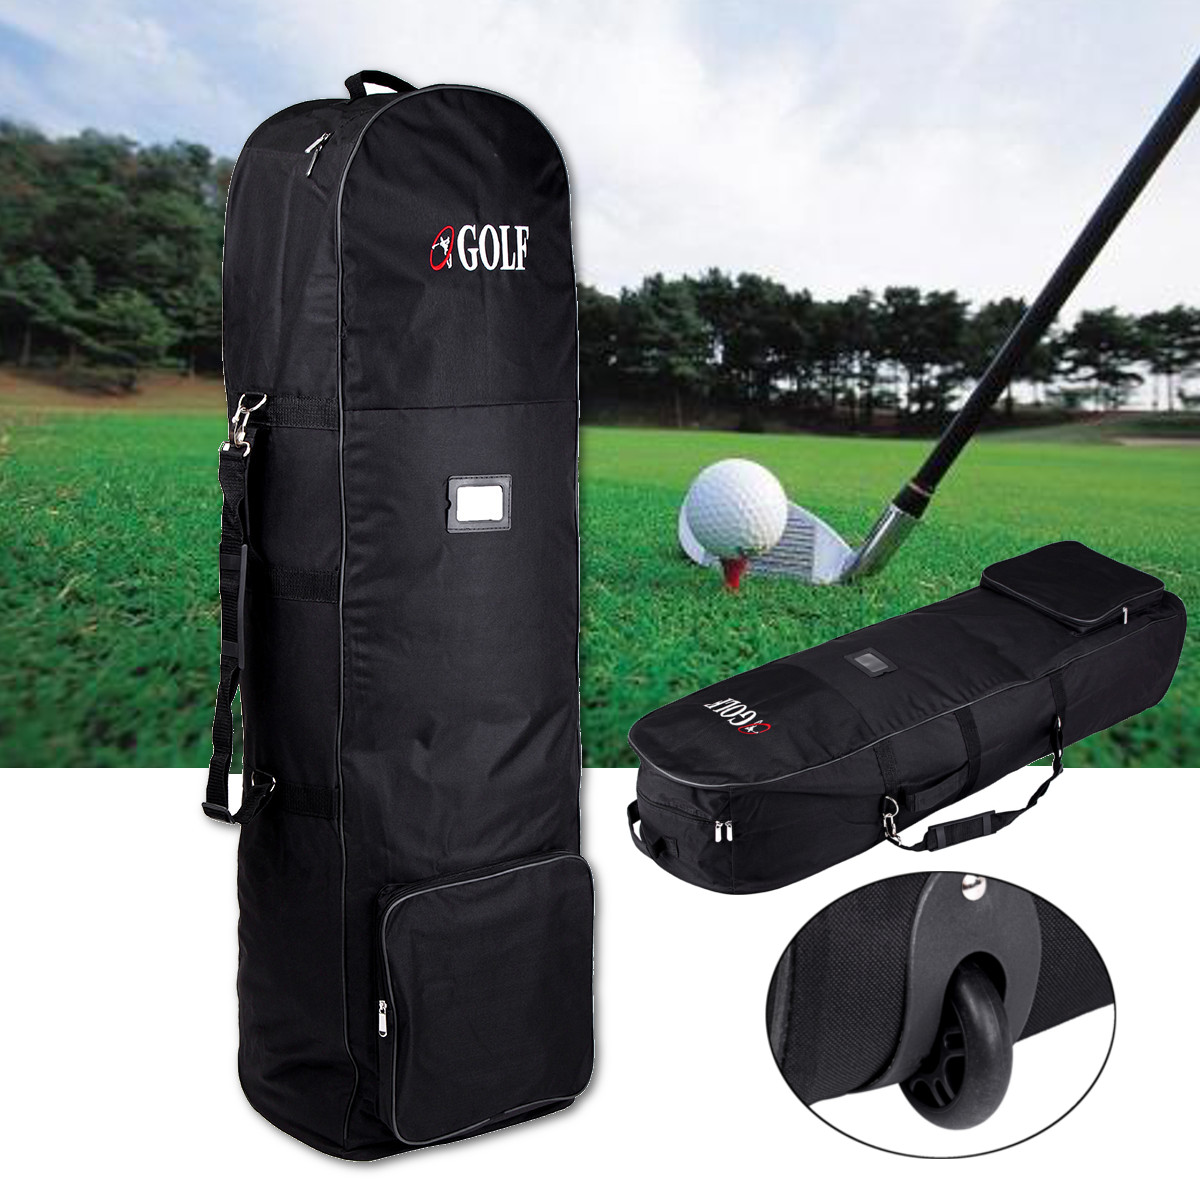 Nylon Golf Clubs Aviation Bag Waterproof Portable Folding Travel Flight Bag Cover with Wheels Sports Bag Golf Accessories